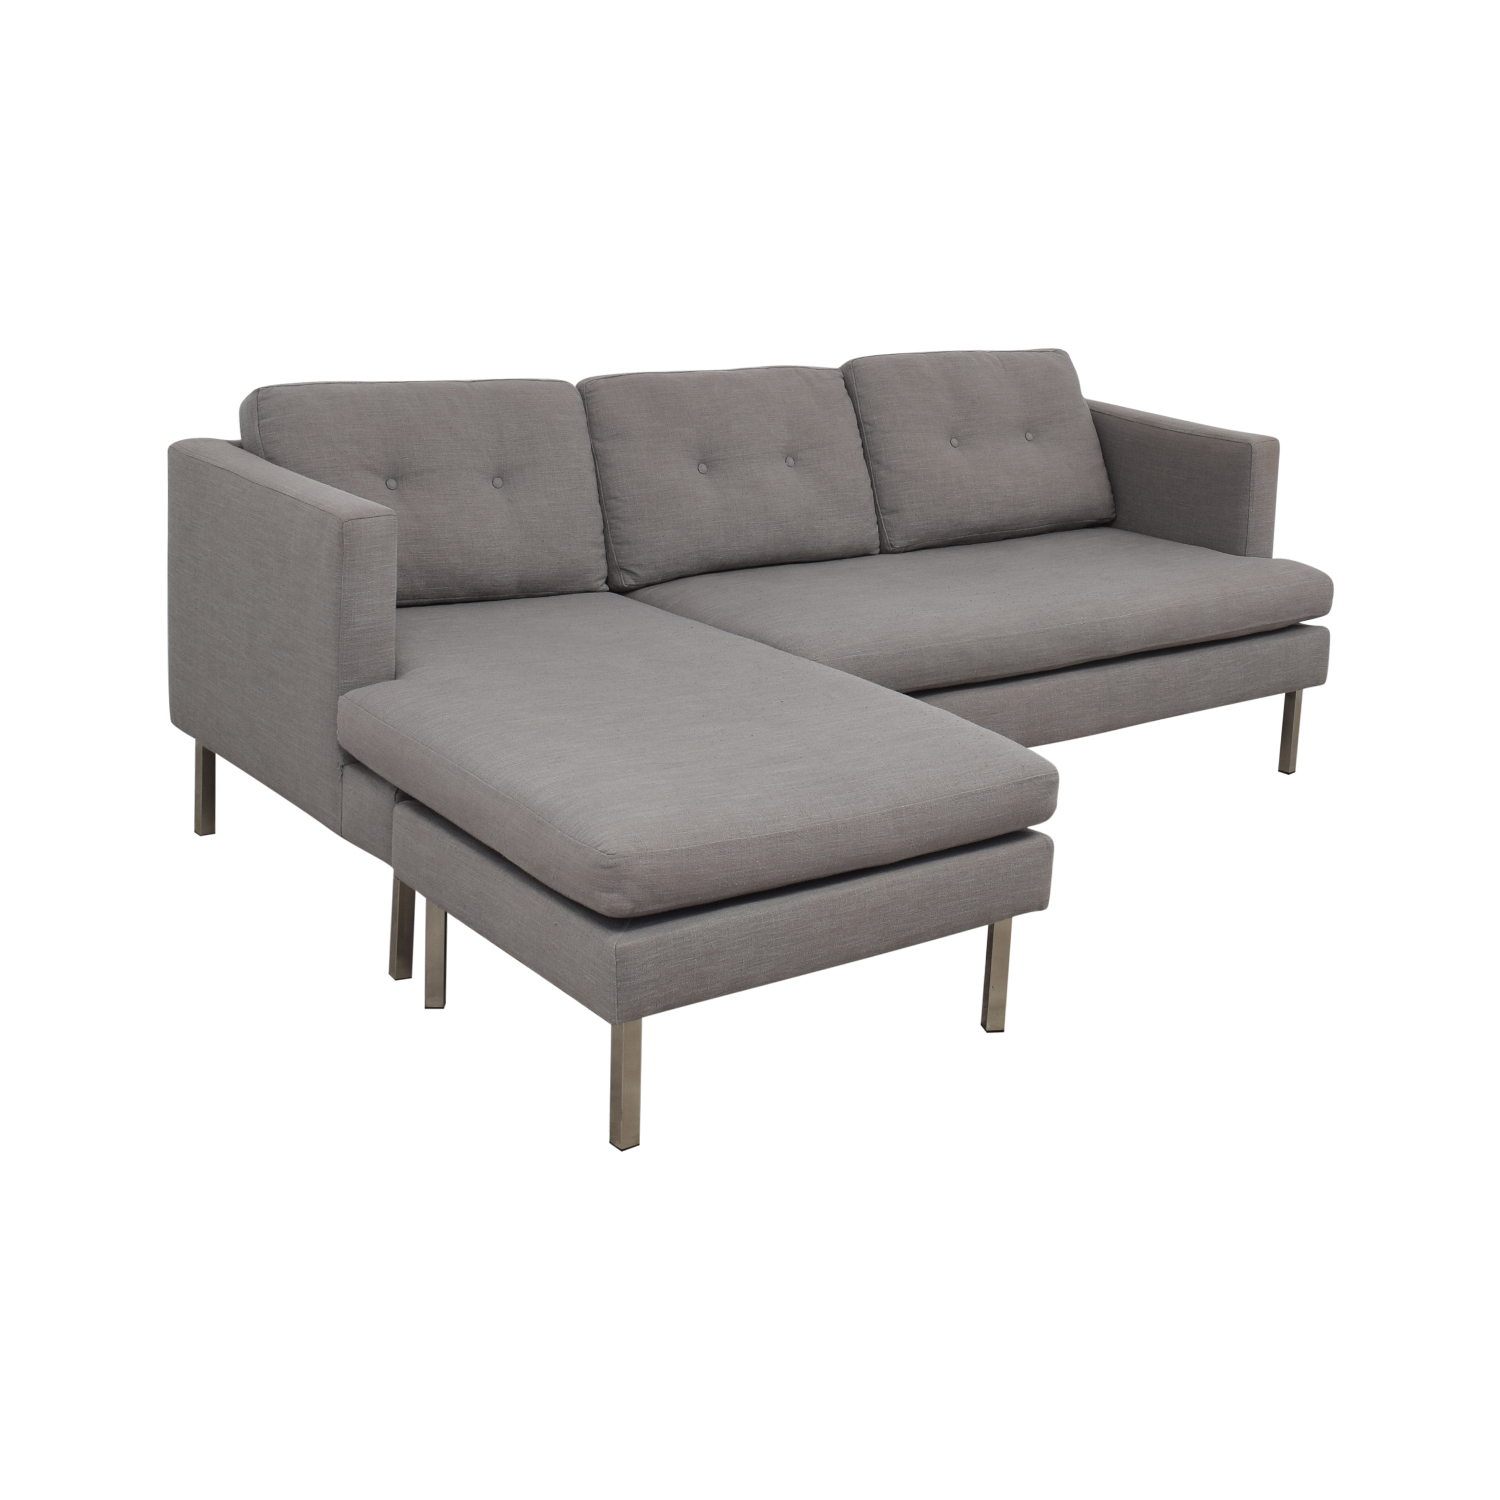 West Elm West Elm Jackson Grey Chaise Sectional used